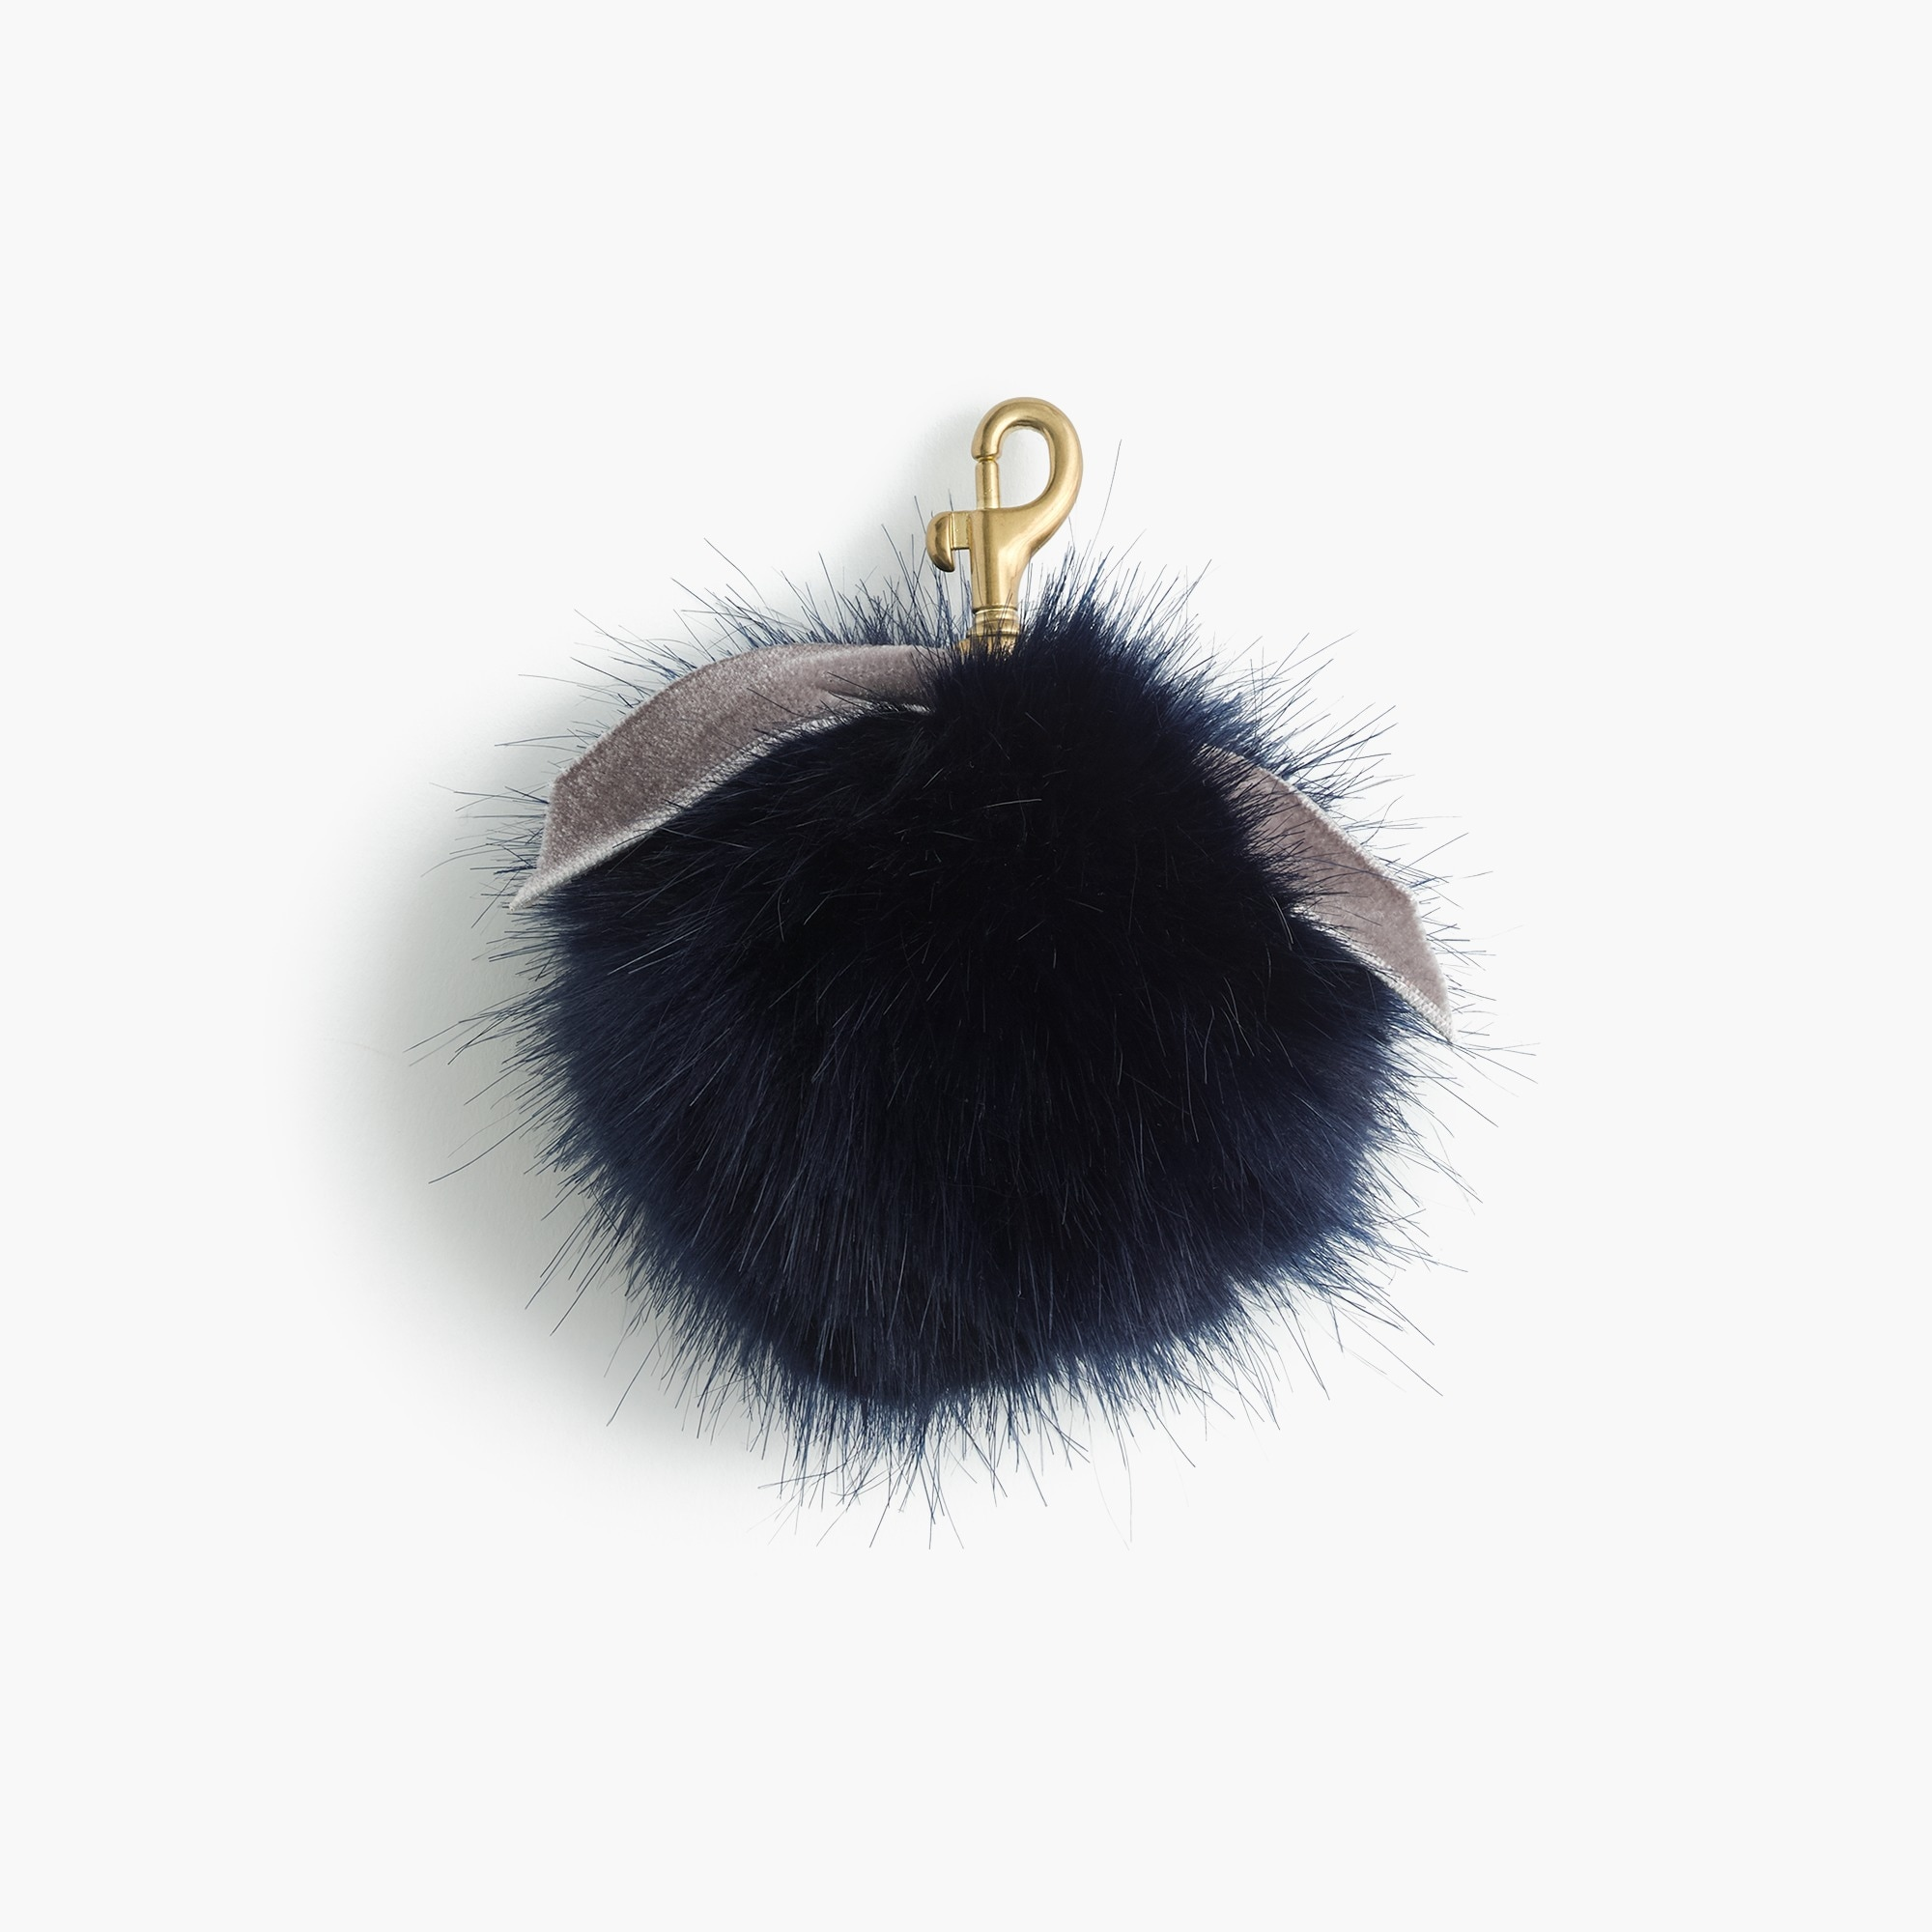 faux-fur pom-pom : women's small leather goods